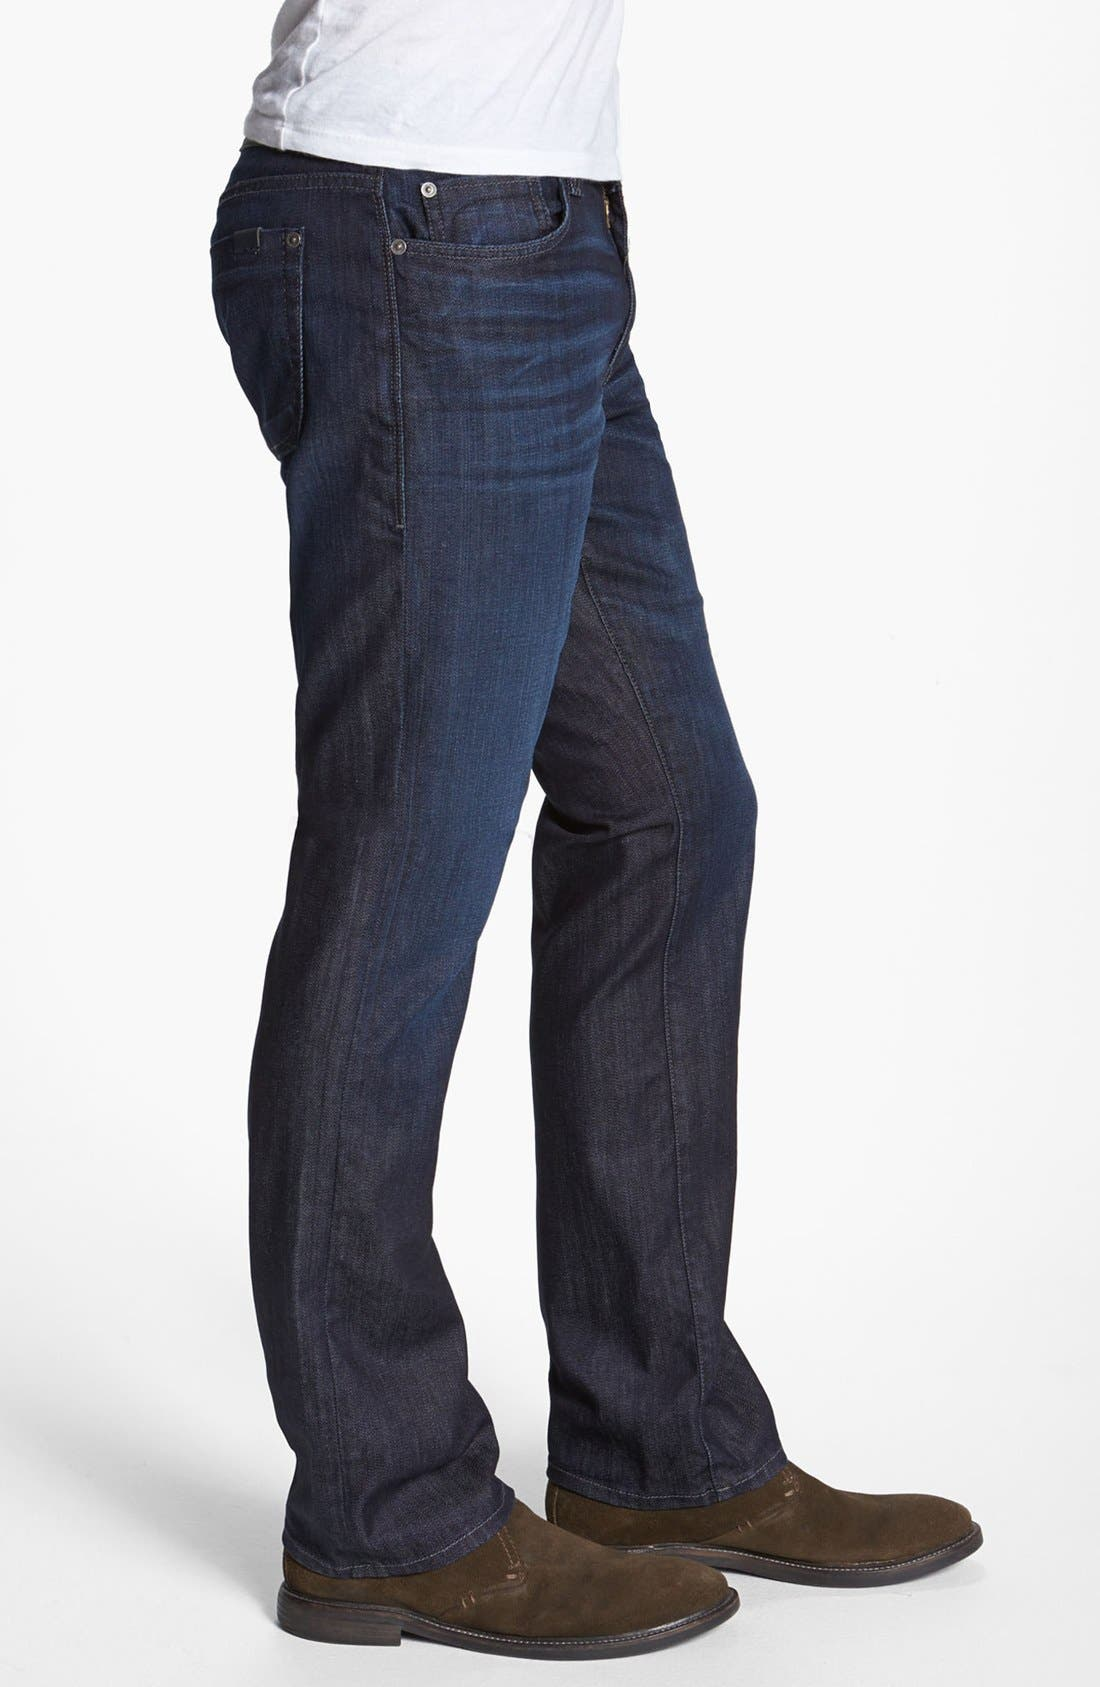 Alternate Image 3  - Fidelity Denim 'Impala' Straight Leg Jeans (Lennon Dark Wash)